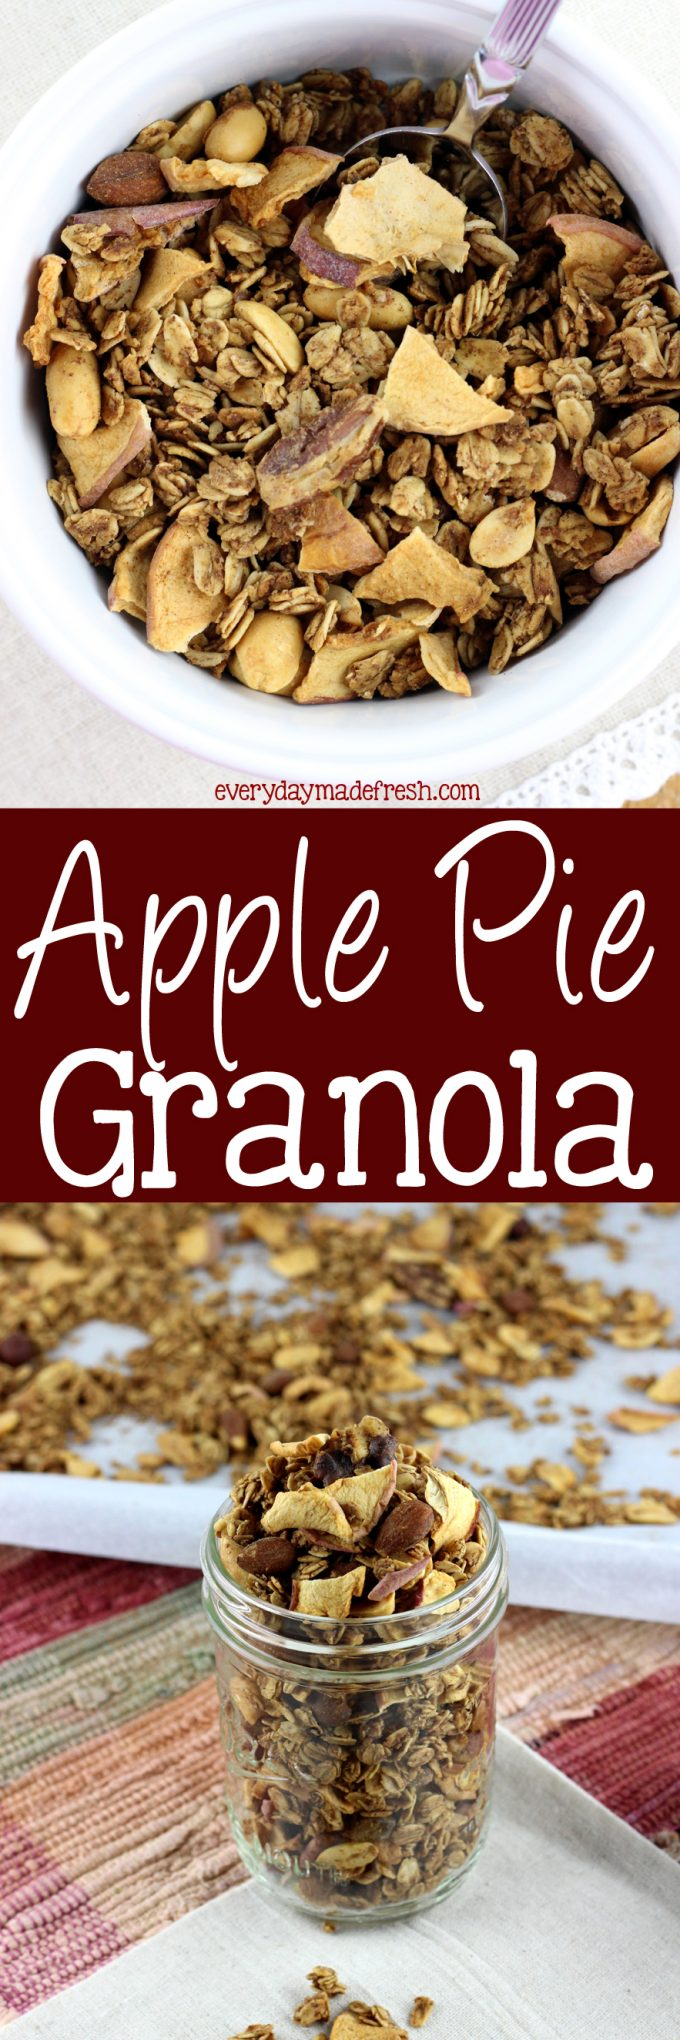 Enjoy all the flavors of apple pie in this easy to make Apple Pie Granola!   EverydayMadeFresh.com